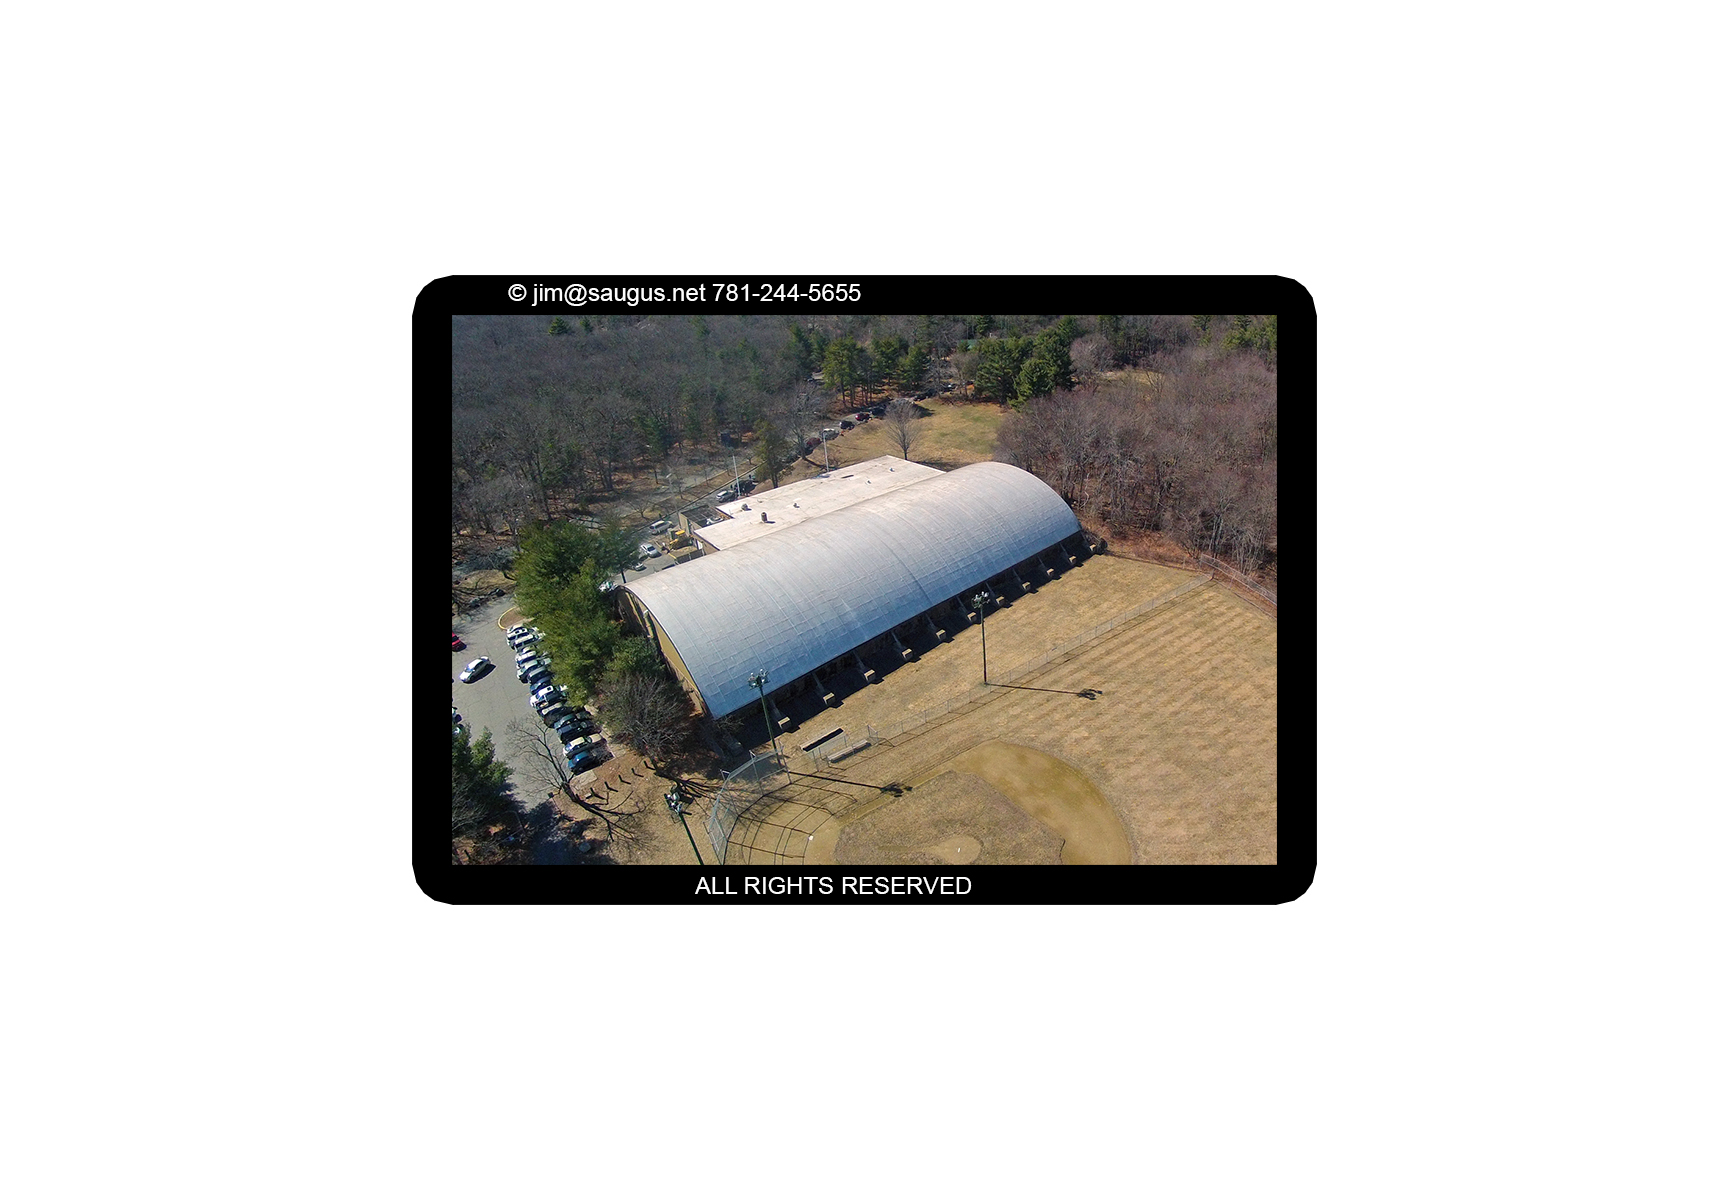 kasabuski rink saugus ma aerial photographer au harrington usa massachusetts j